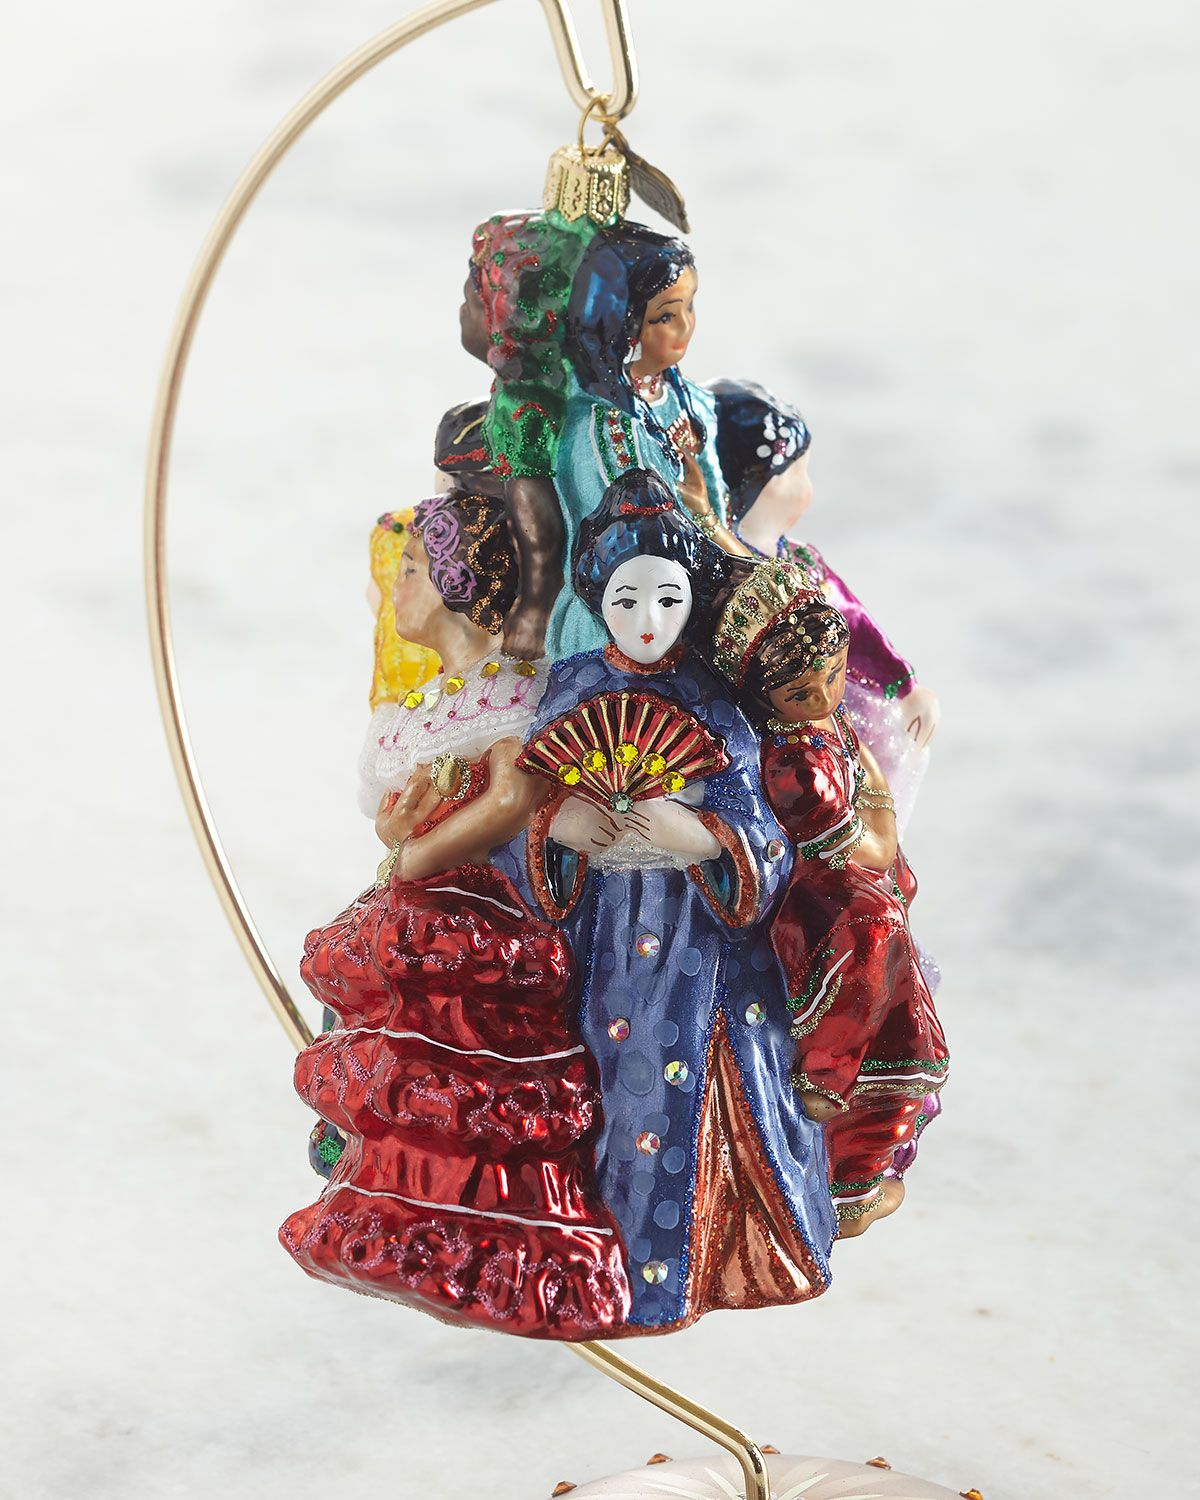 Jay Strongwater Christmas Ornaments 2020 Neiman Marcus Jay Strongwater Nine Ladies Dancing Glass Ornament in 2020 | Glass